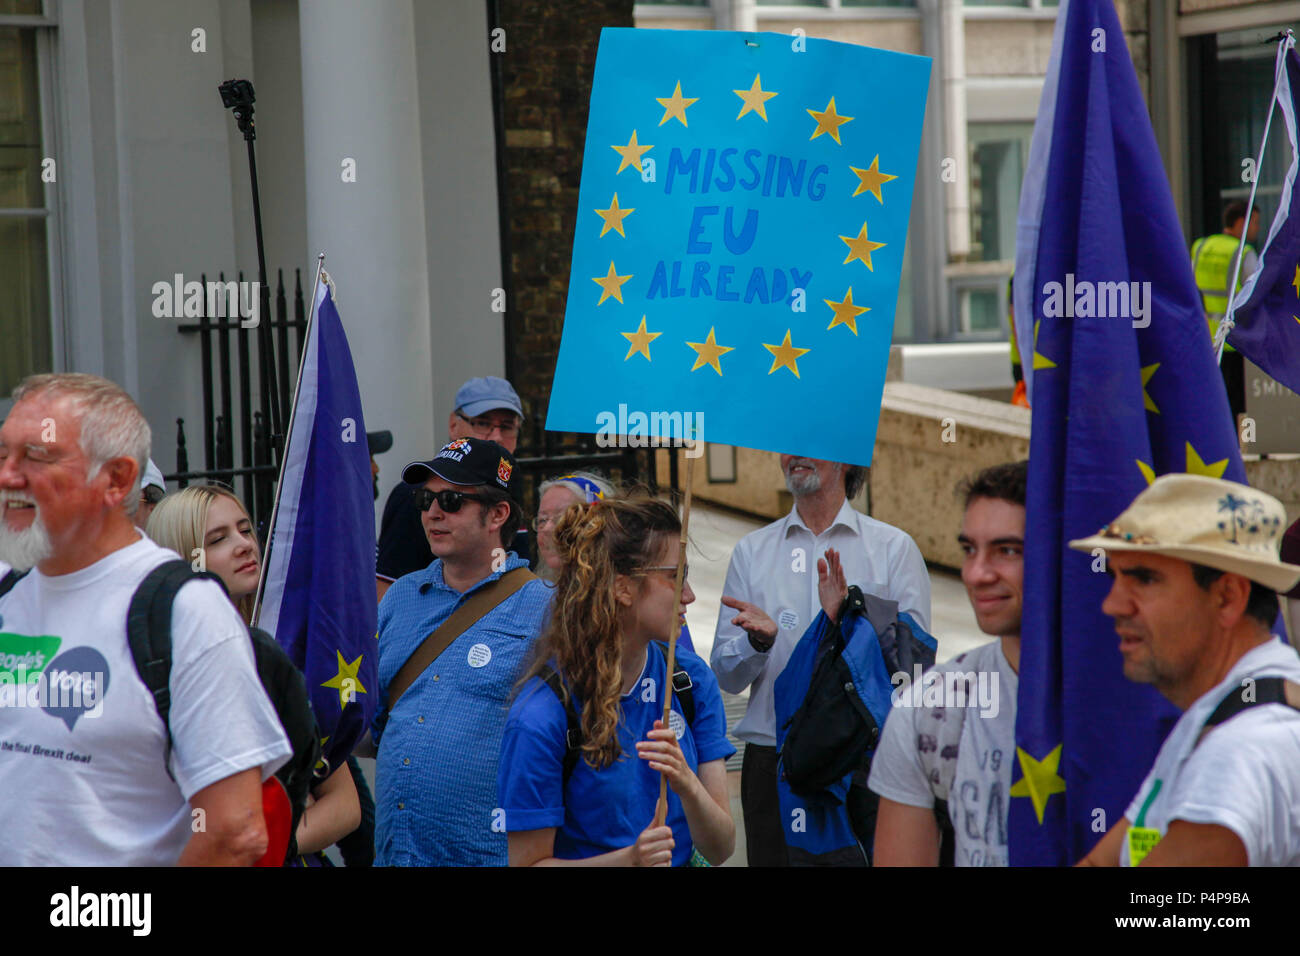 London, UK. 23rd June 2018. Anti-Brexit protesters at the People's Vote March Credit: Alex Cavendish/Alamy Live News - Stock Image